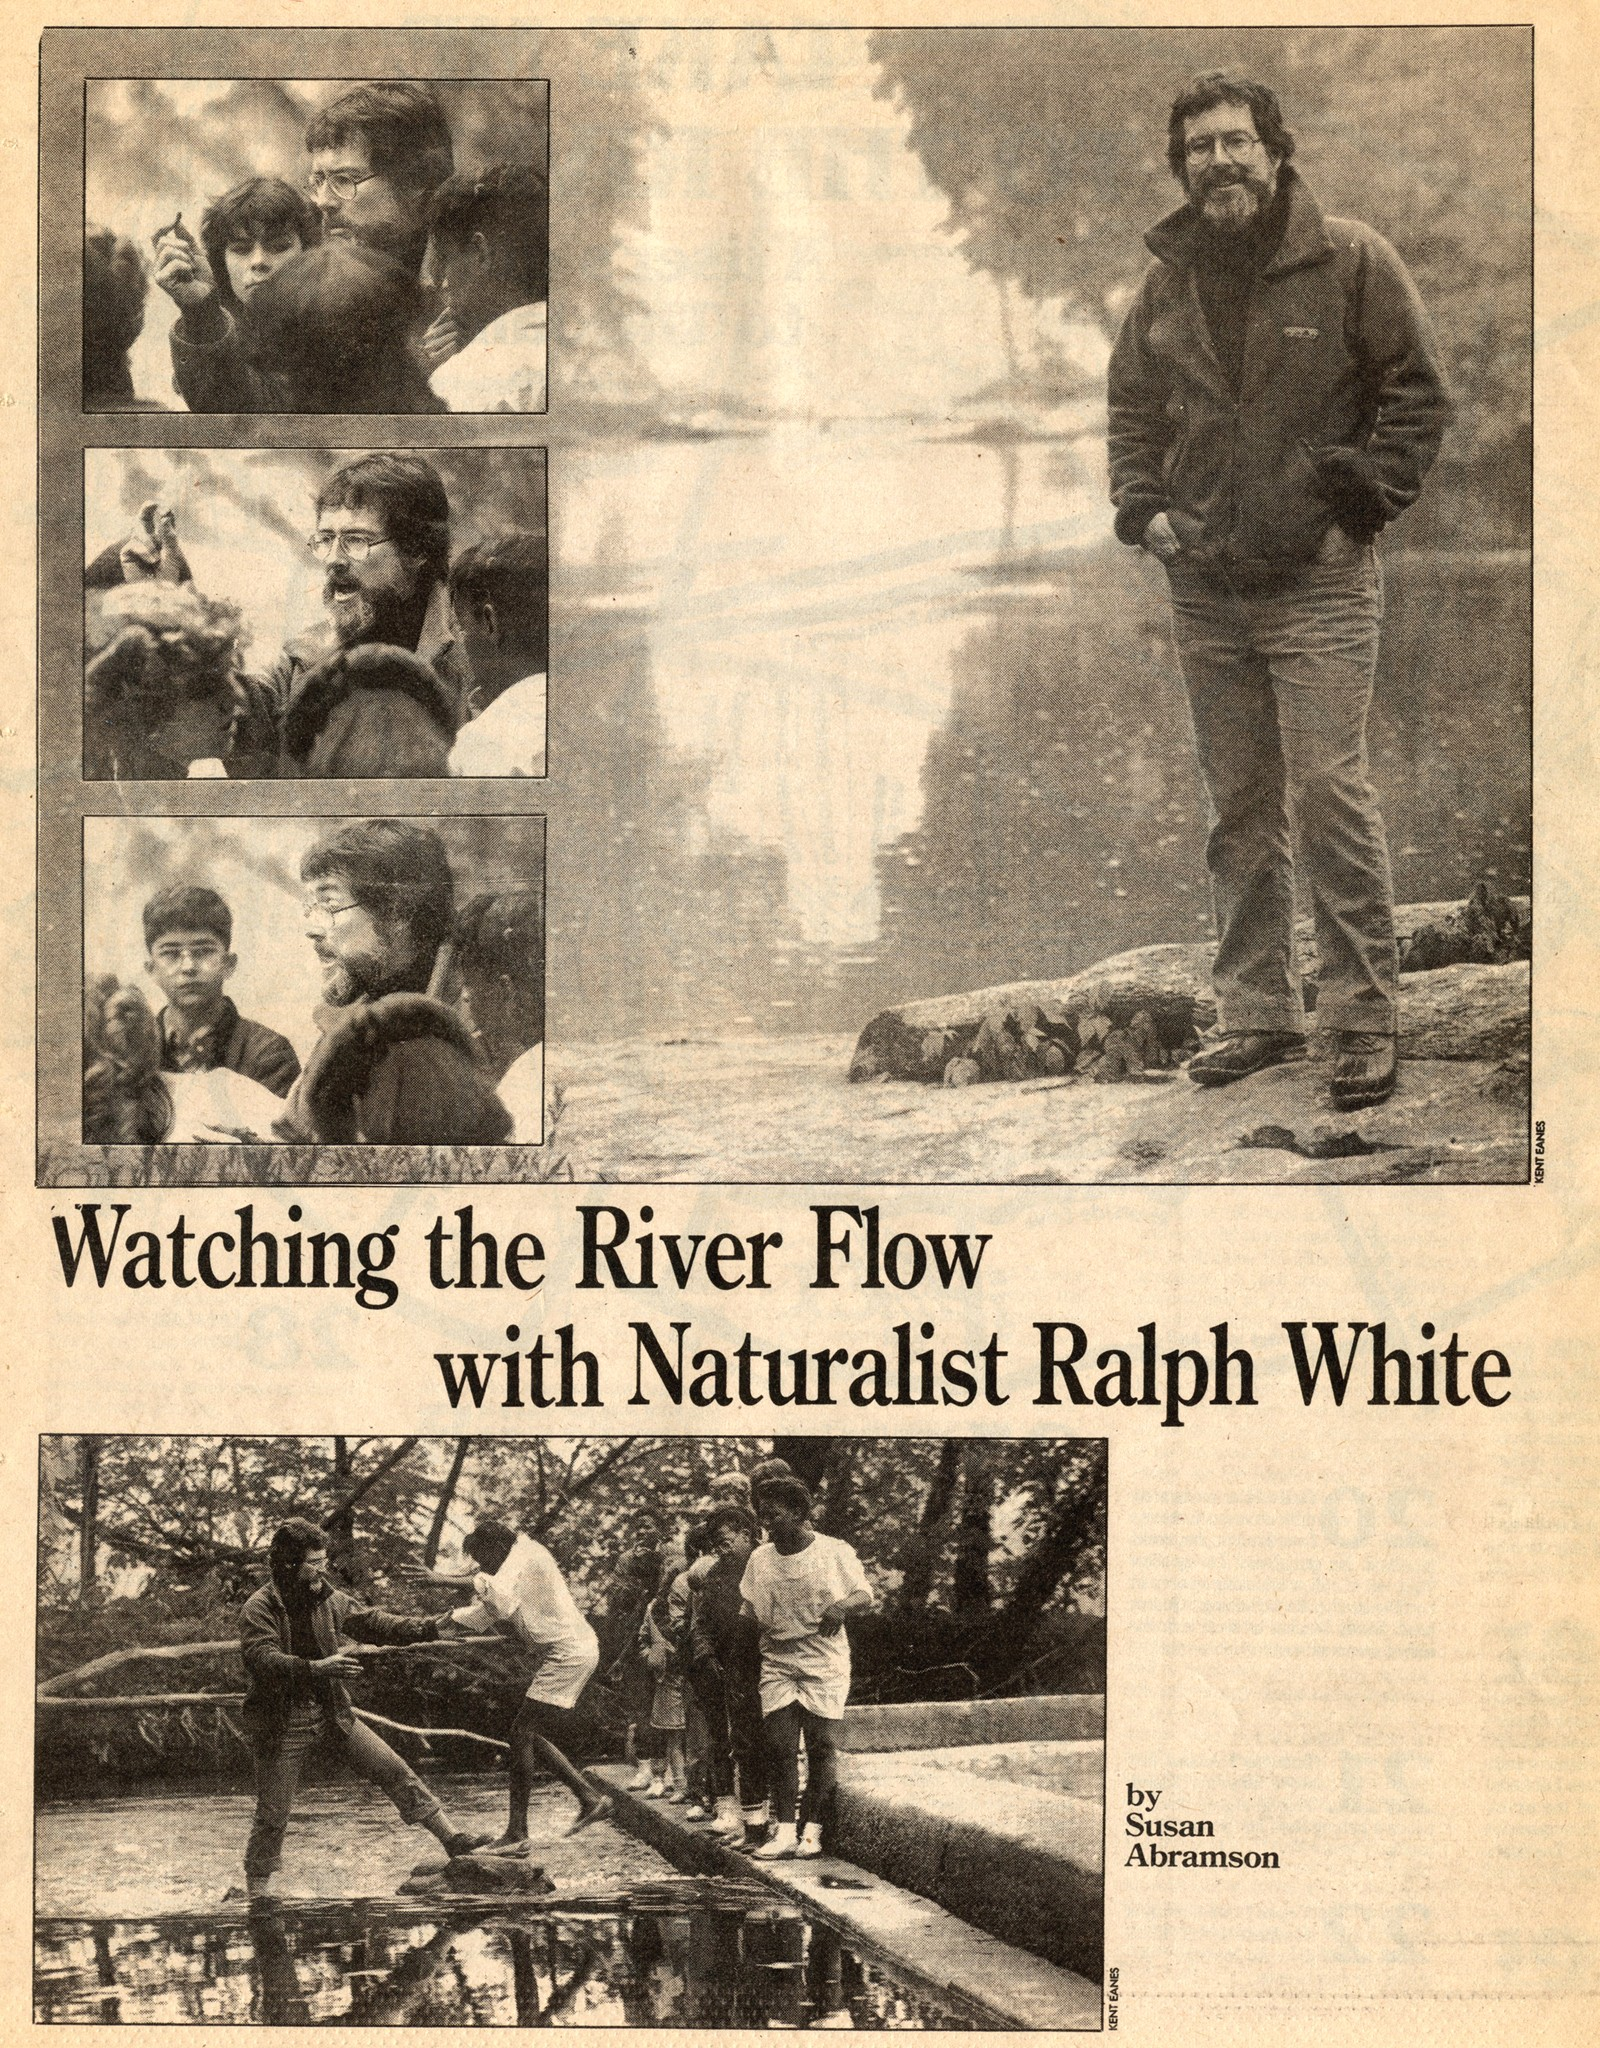 Ralph White has never been shy with the media. He's appeared in Style on multiple occasions, here in May 1986.